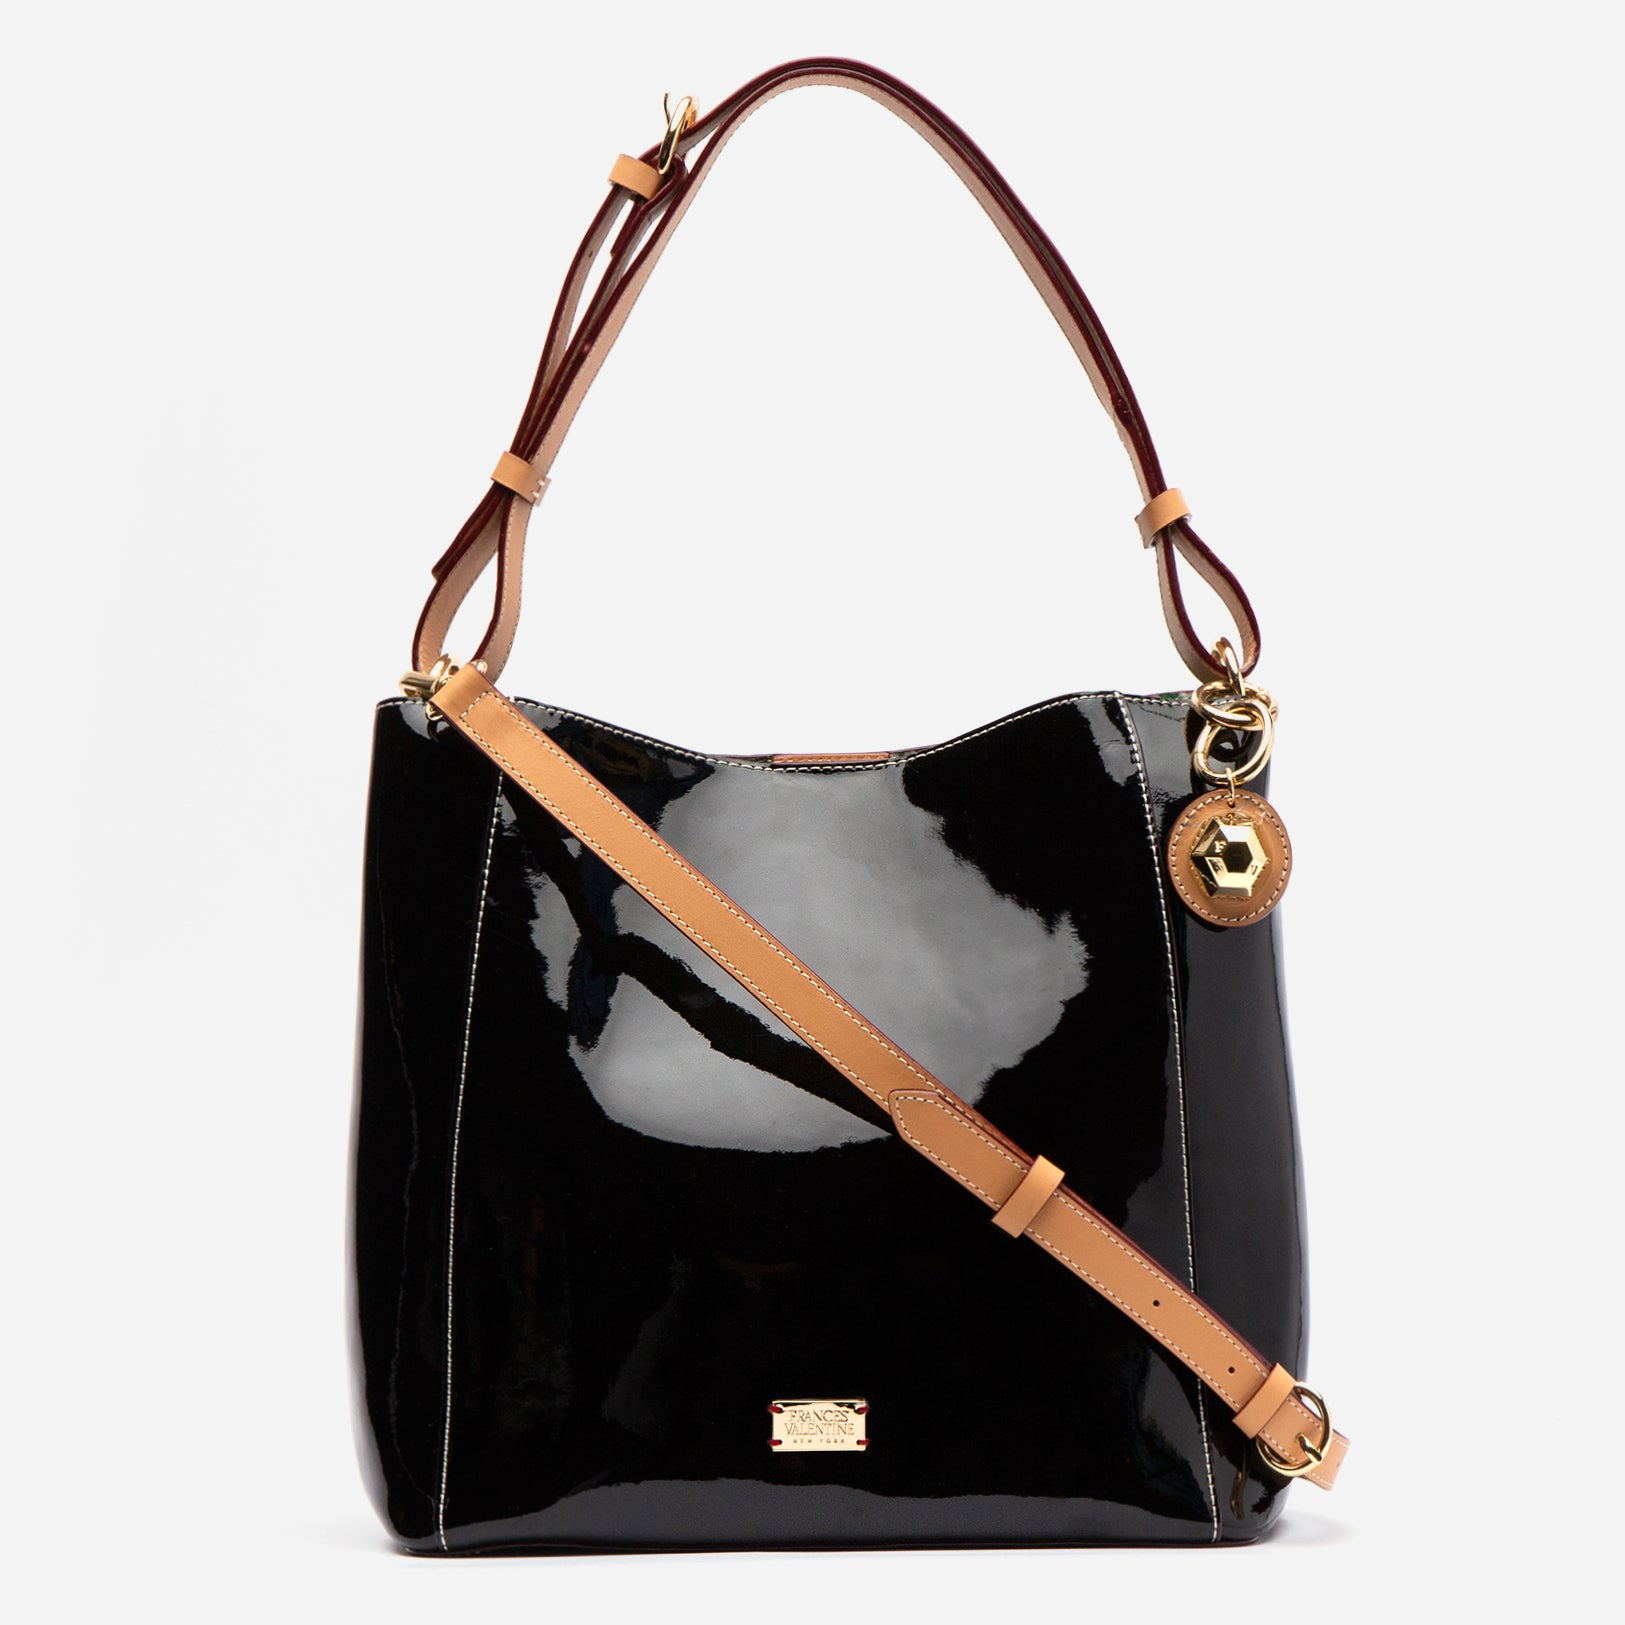 June Hobo Handbag Black Patent